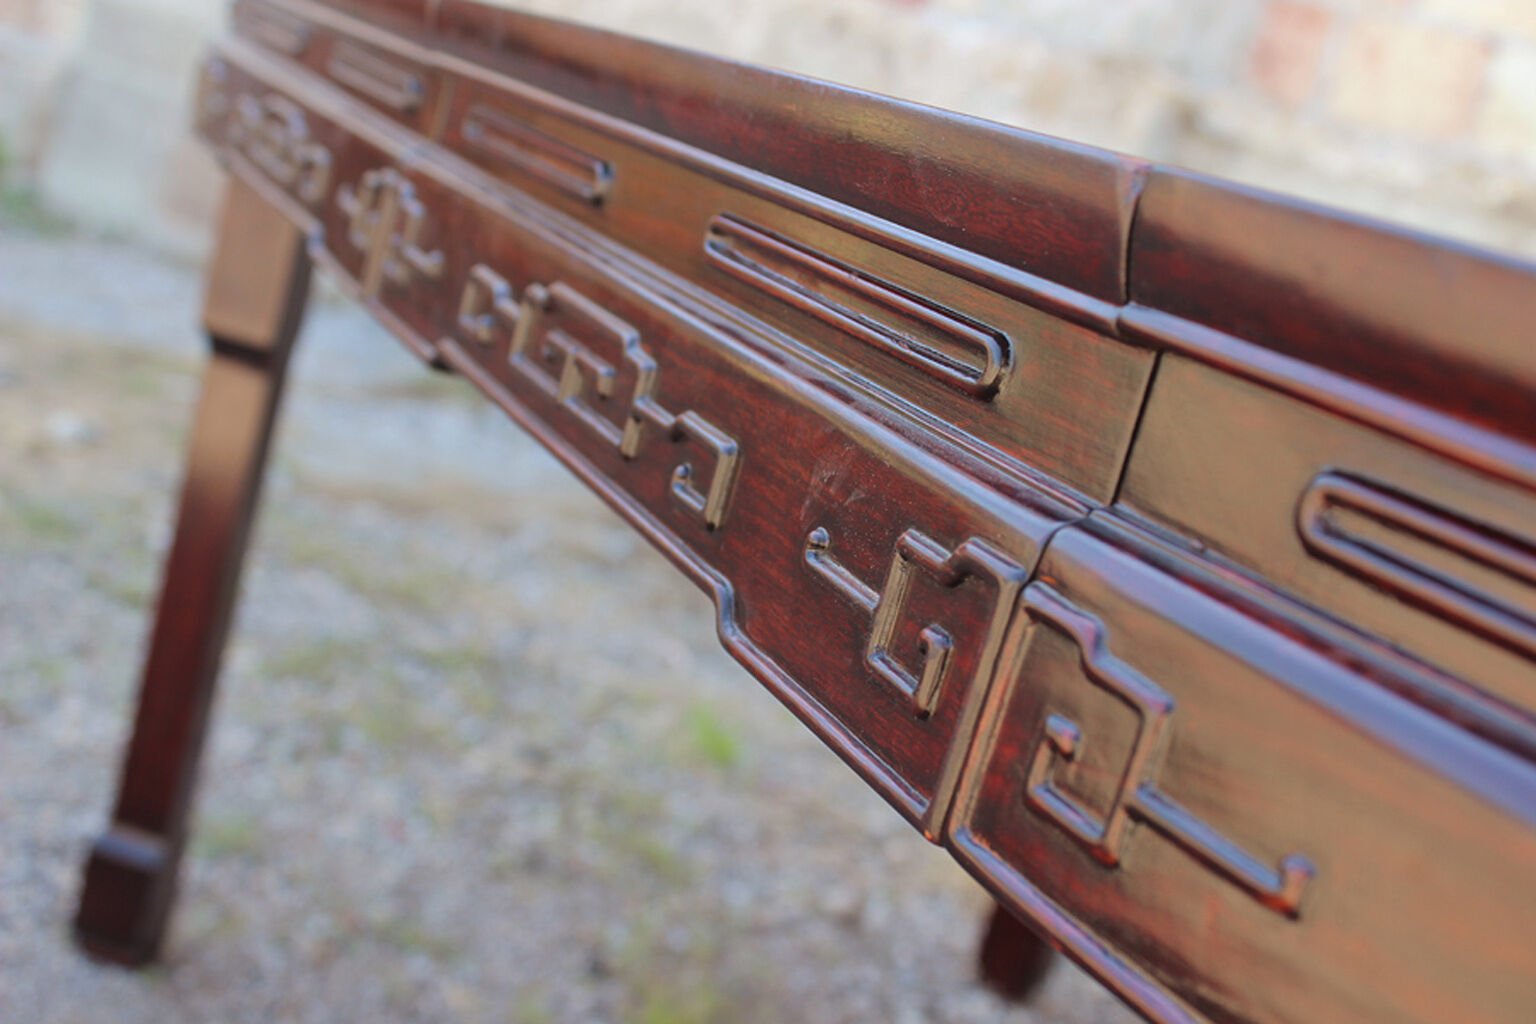 Vintage Chinese Rosewood And Mother Of Pearl Dining Table On Image To Enlarge